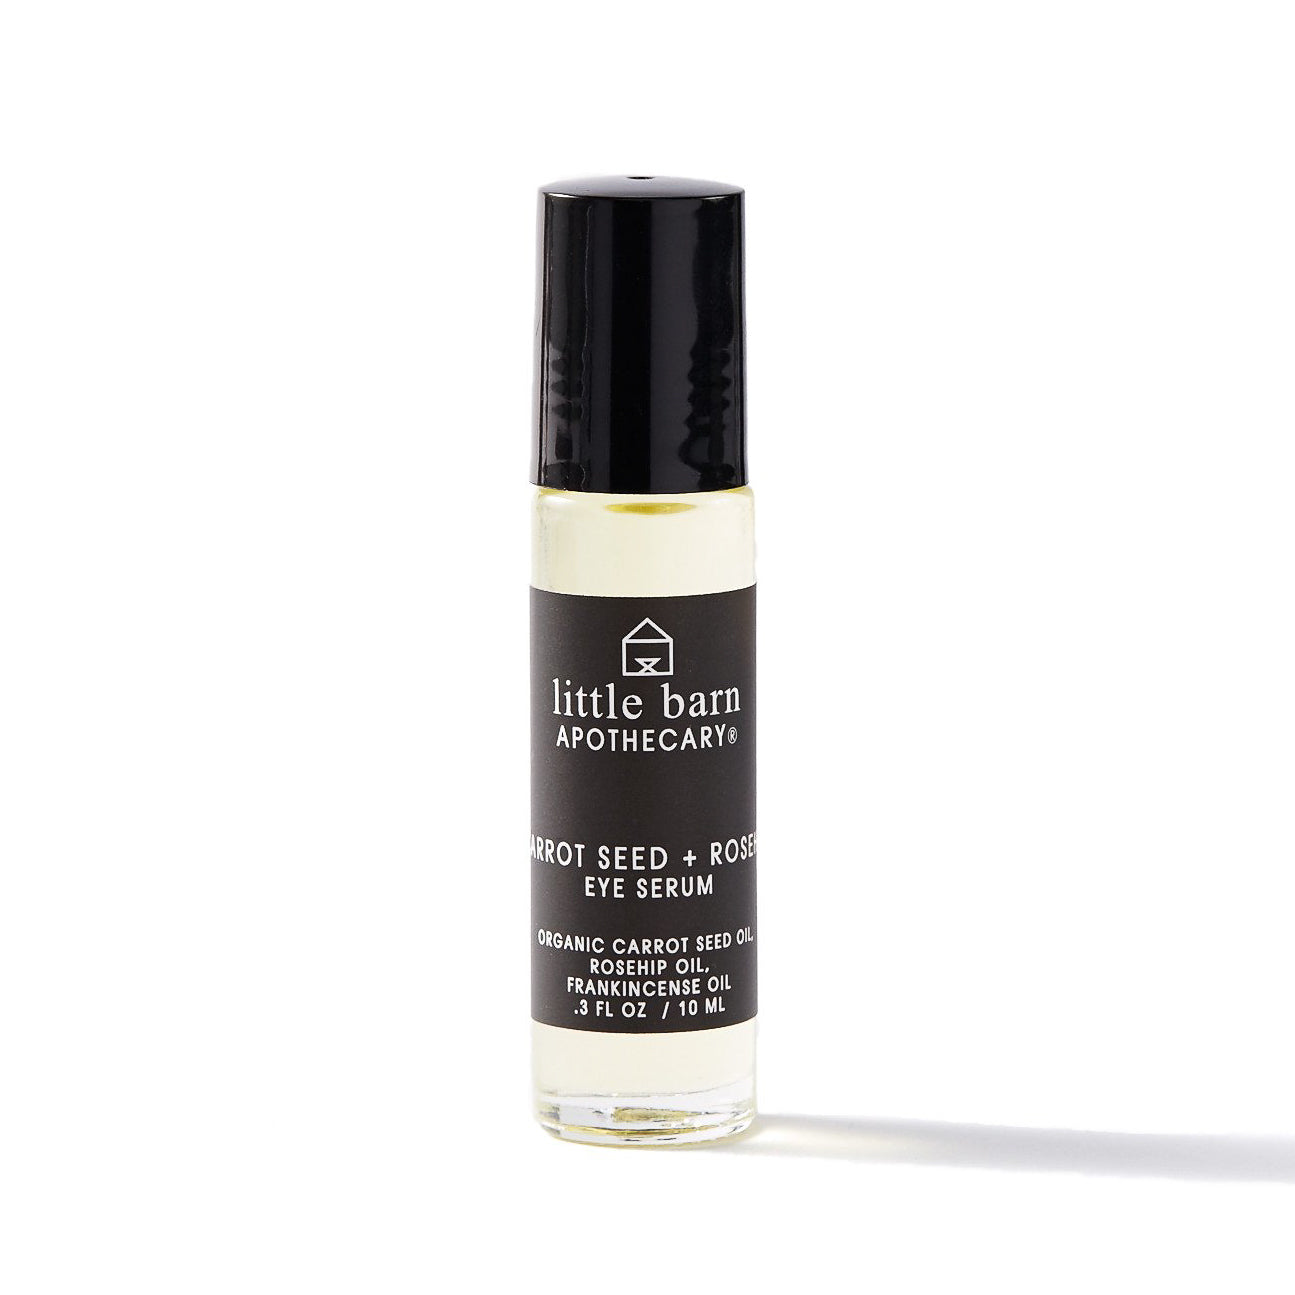 Little Barn Apothecary Carrot Seed + Rosehip Eye Serum